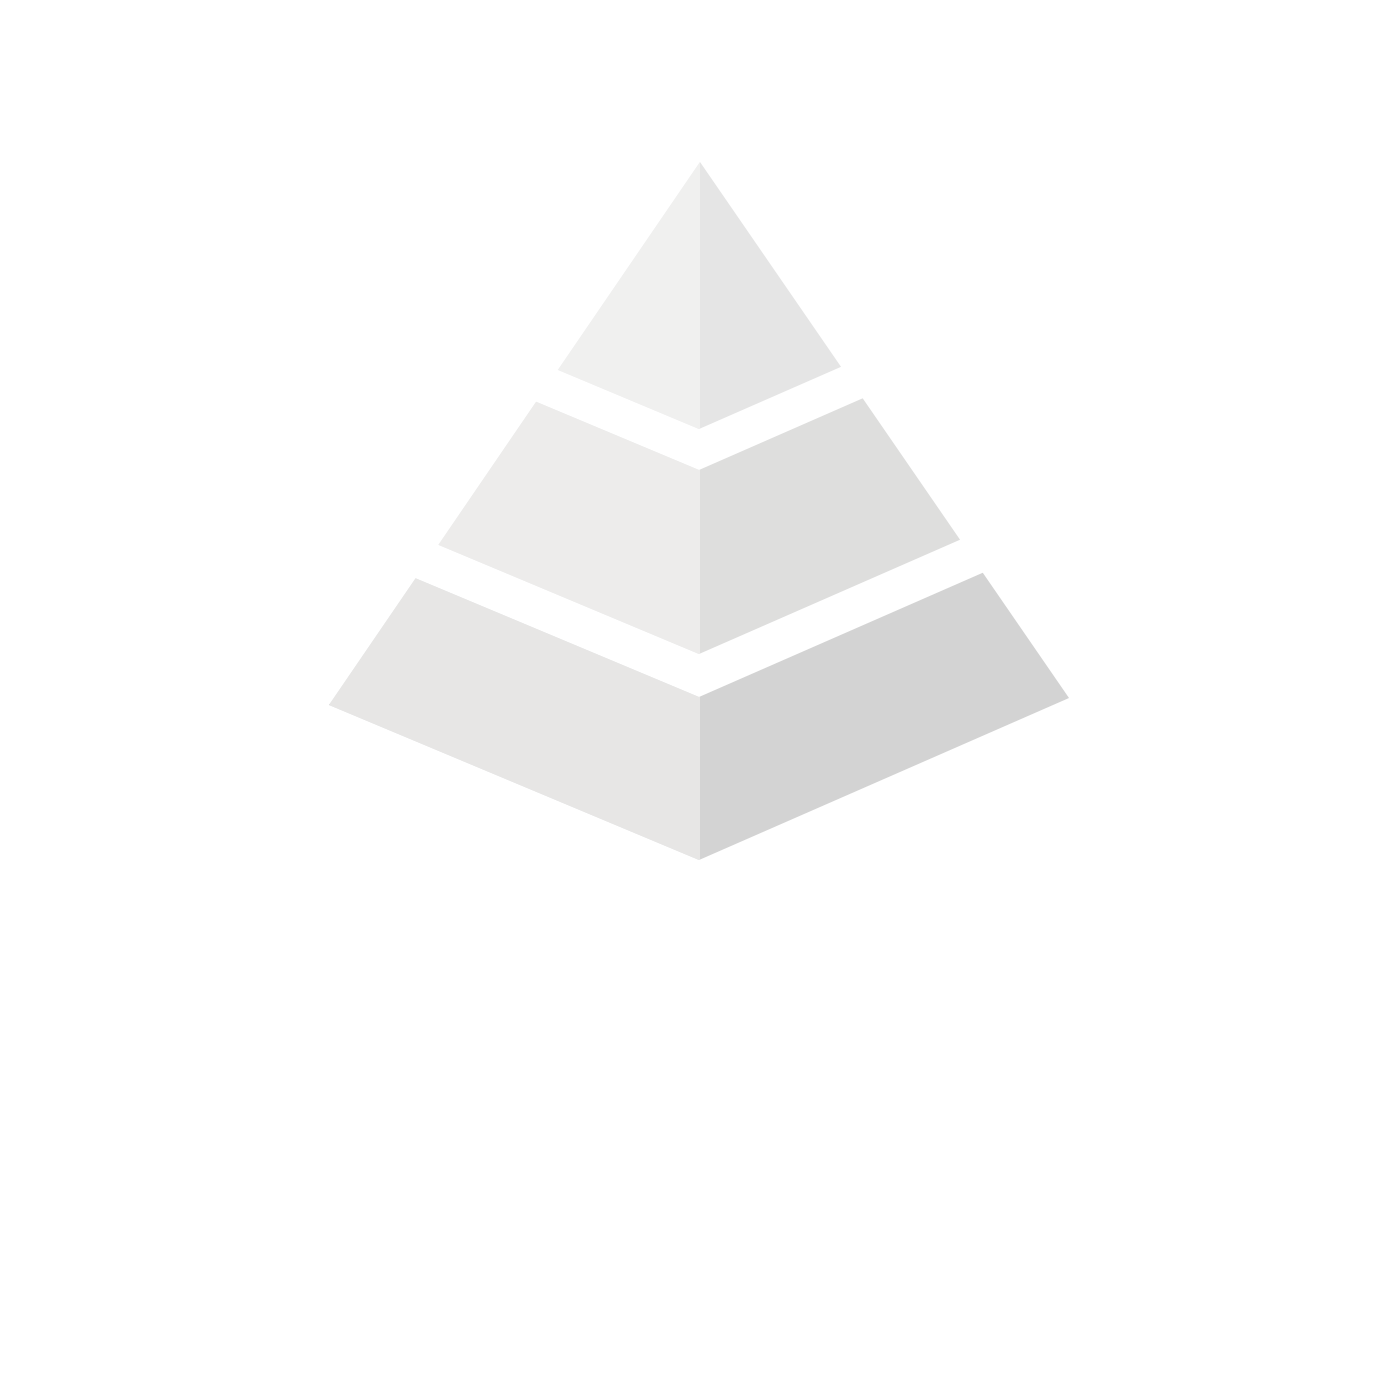 Levels Management